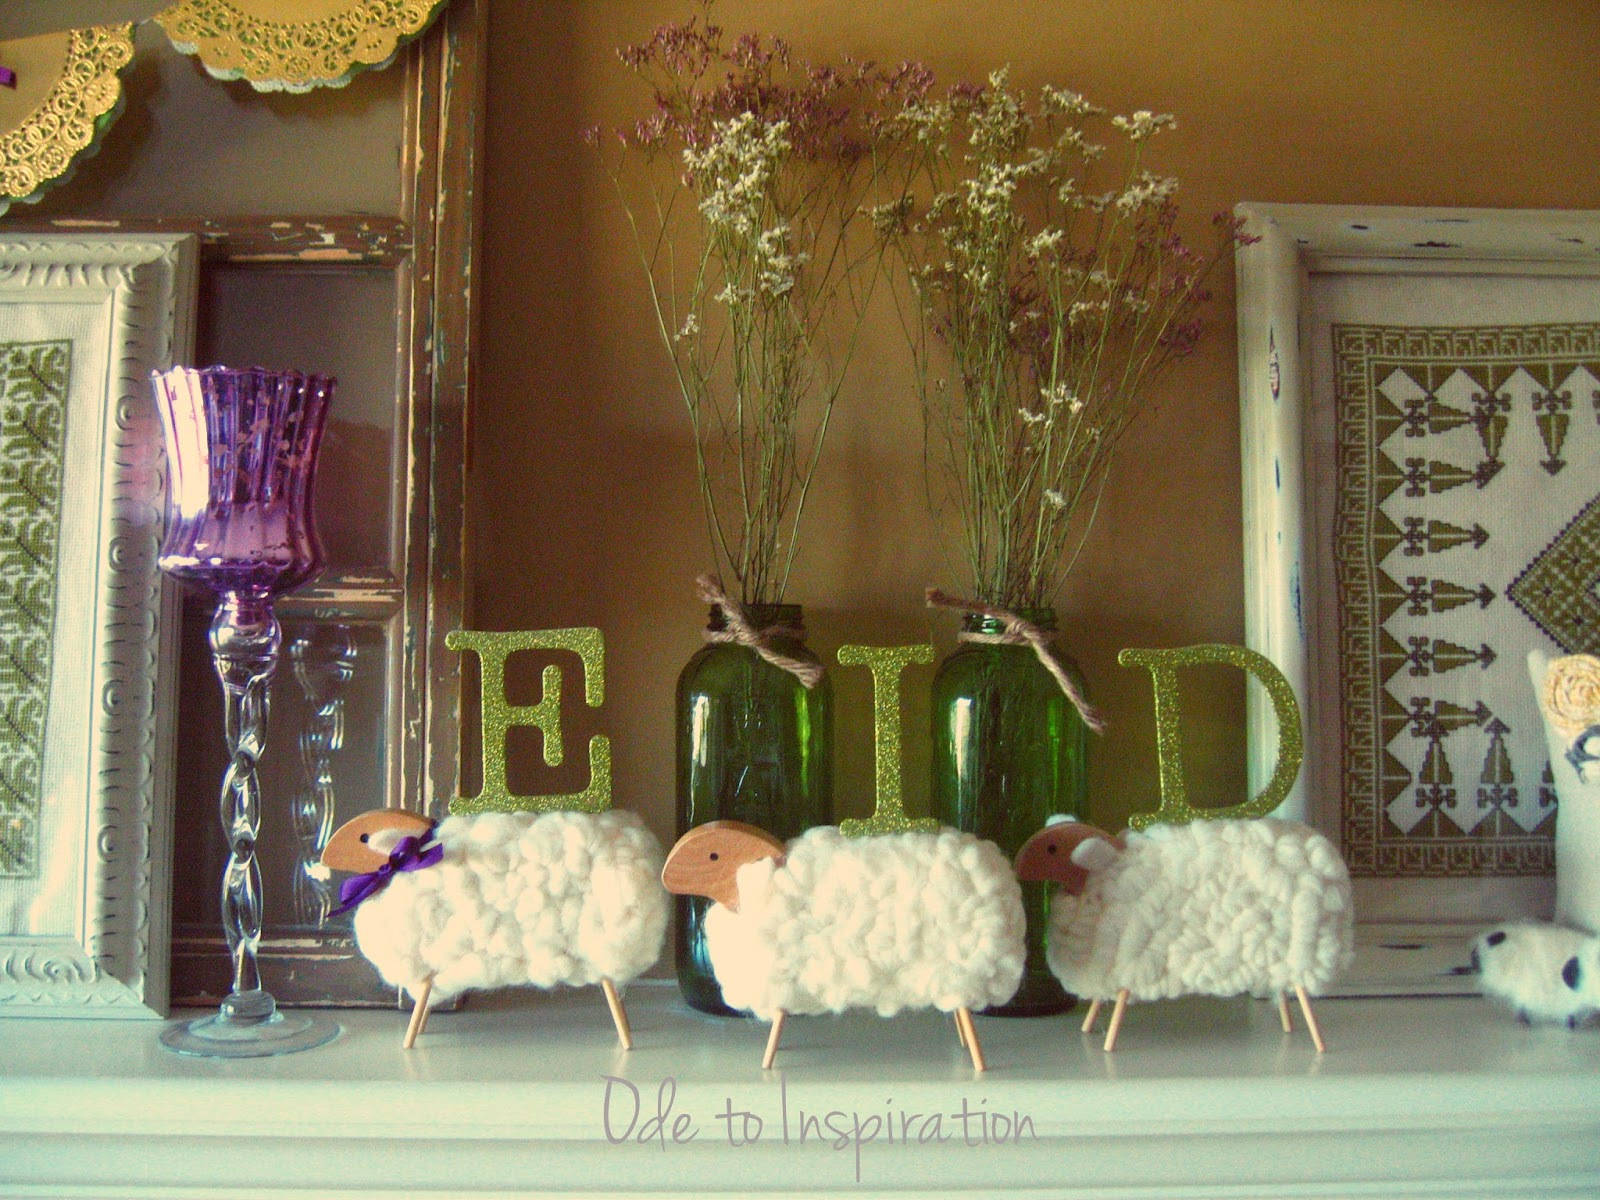 Wonderful Festival Eid Al-Fitr Decorations - Eid-lambs-Decorations1  Gallery_124128 .jpg